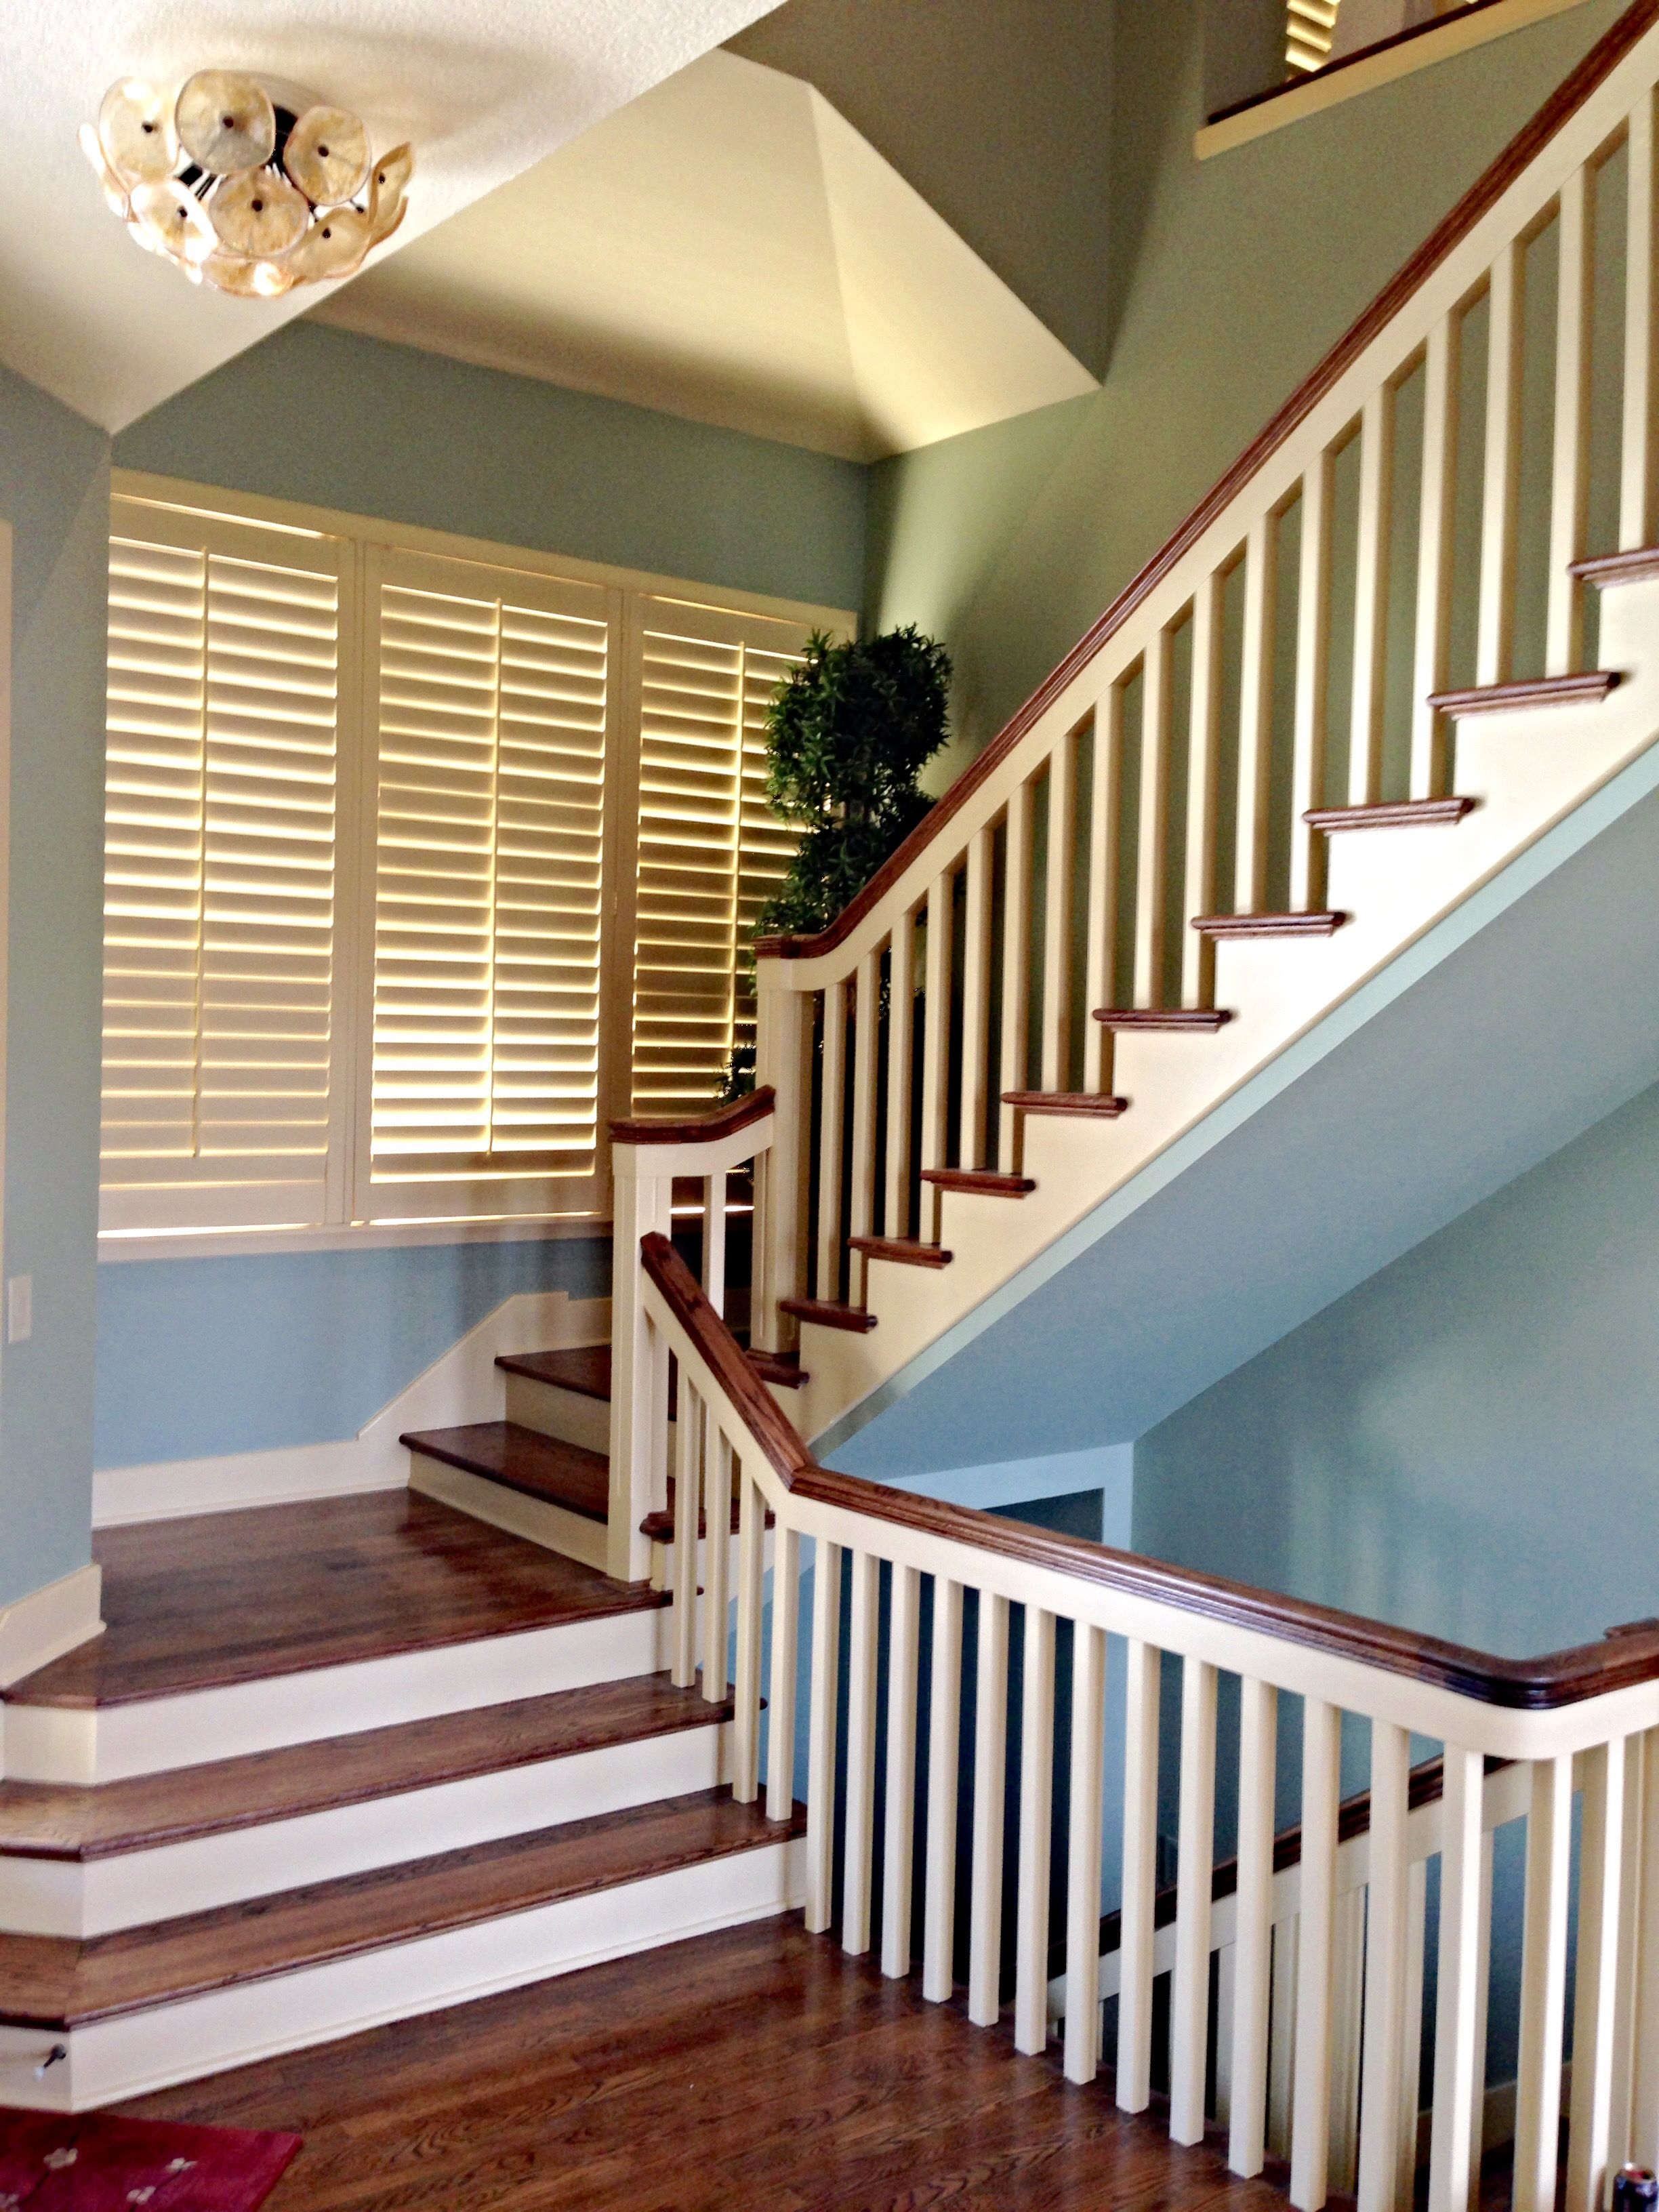 Interior Residential Painting Company Neighborhood Painting In House Painting Kansas City House Painting Cost House Painting